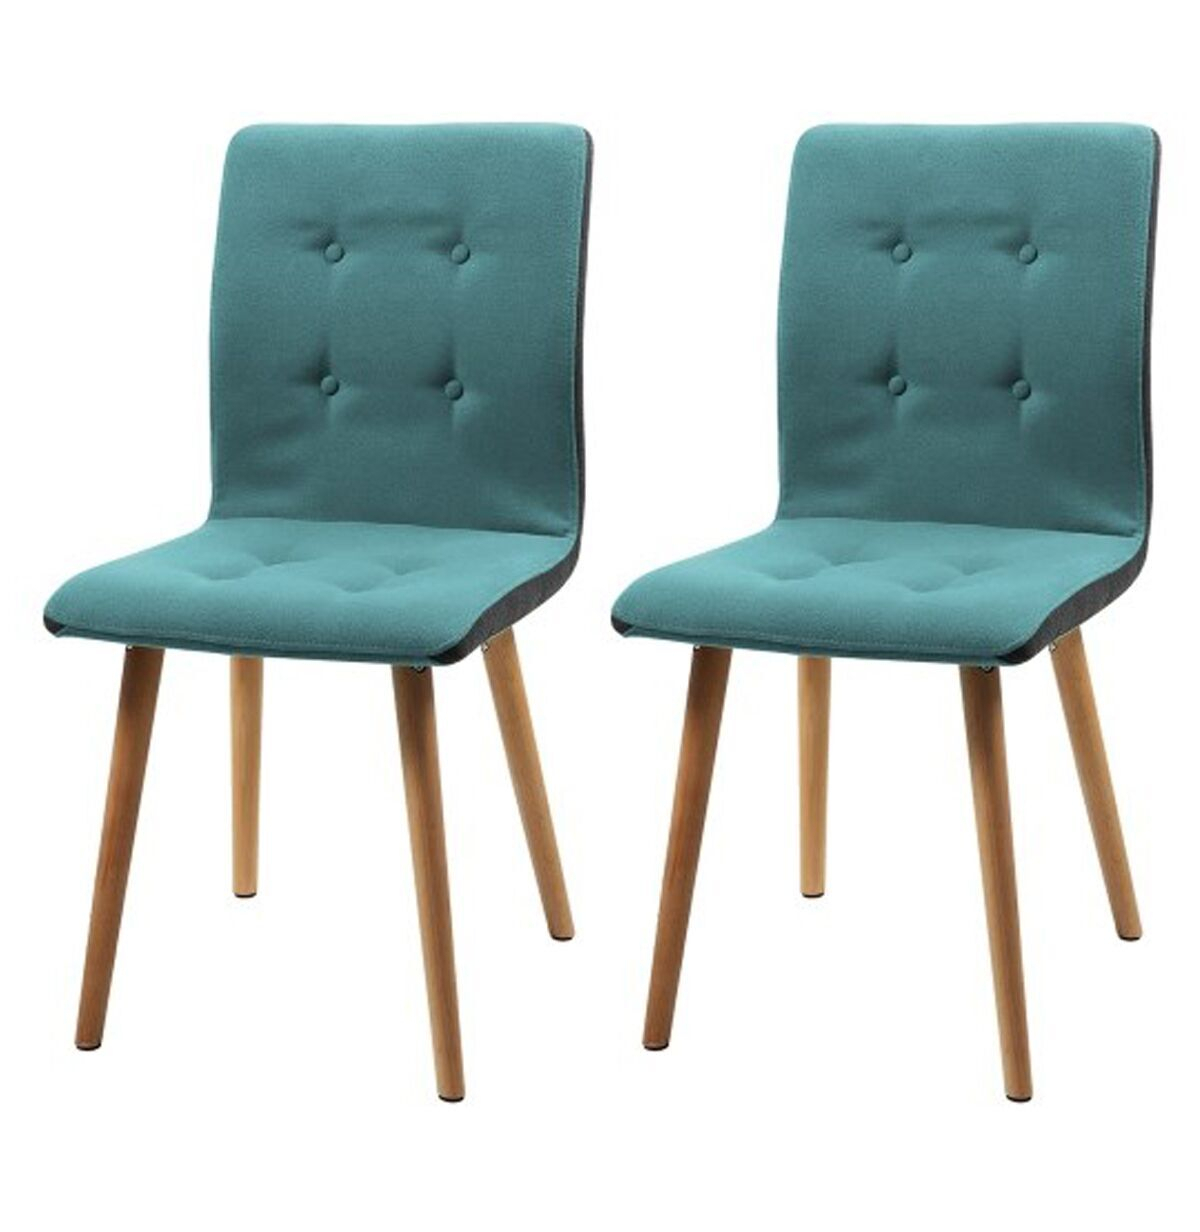 Frida Dining Chairs Teal Coloured Fabric (Pair) With Regard To Most Current Frida 3 Piece Dining Table Sets (View 14 of 20)